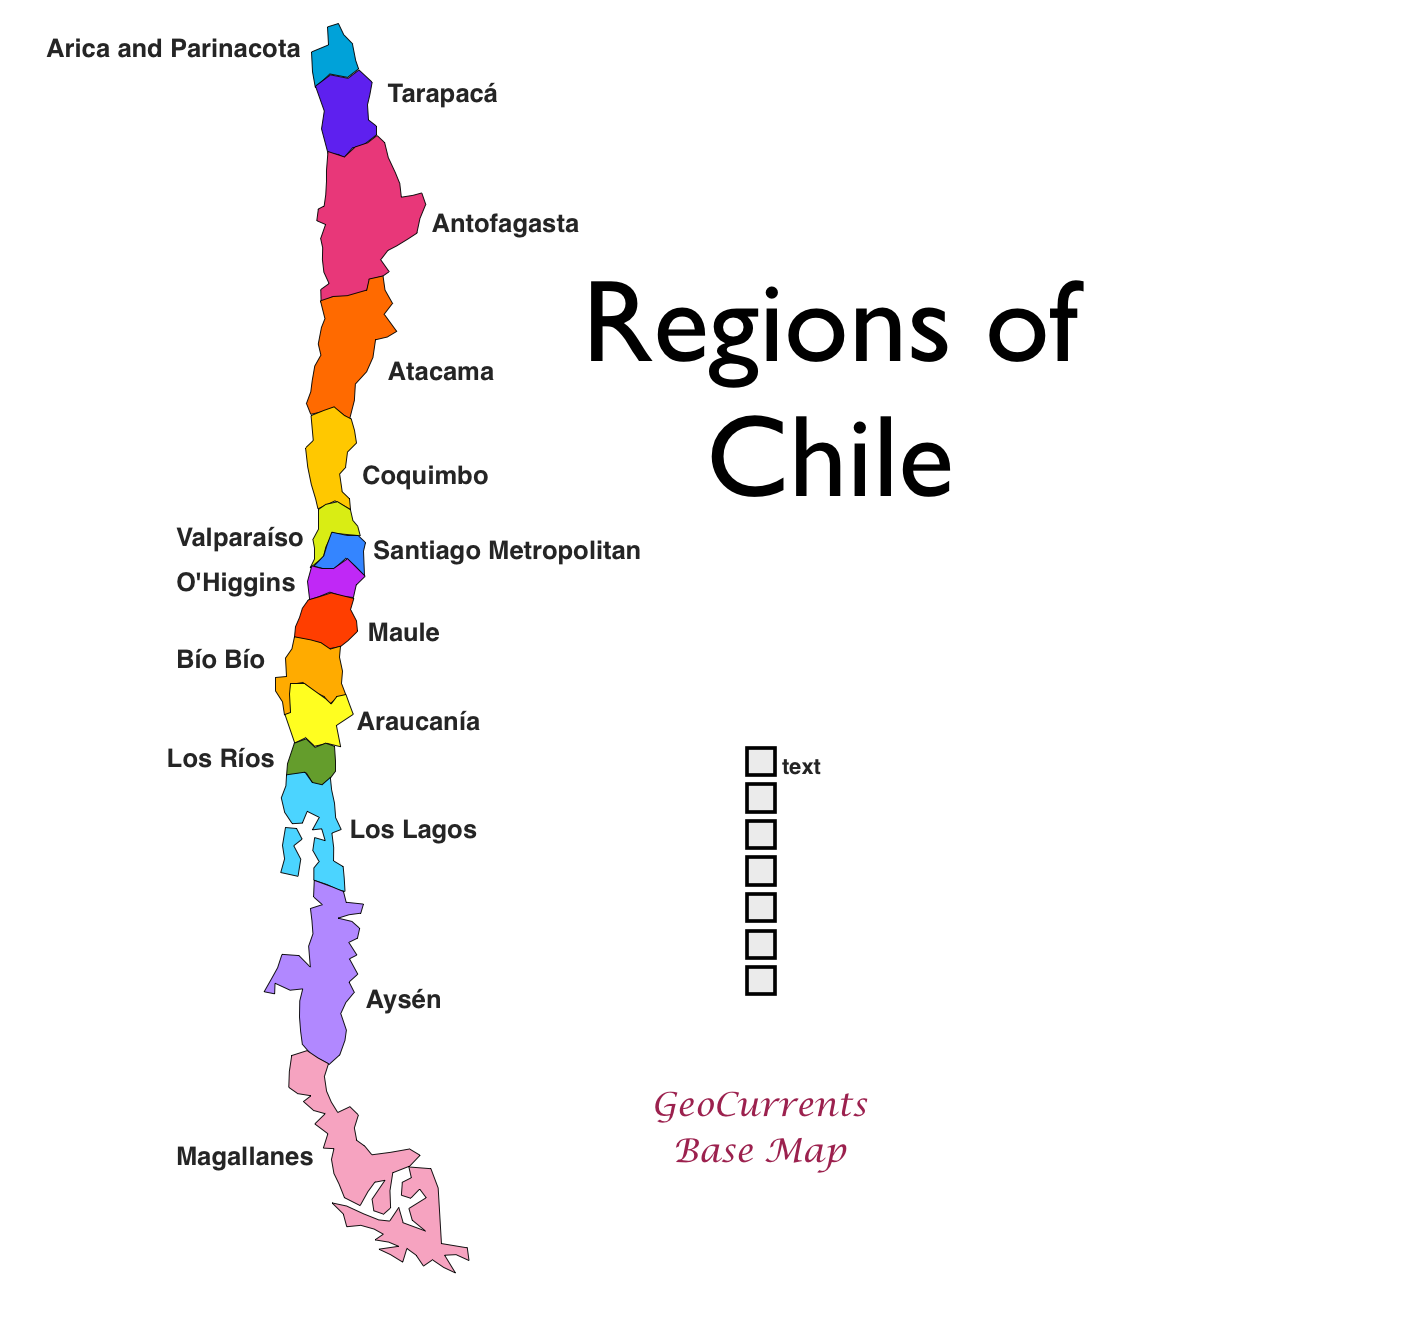 GeoCurrents Maps of Chile GeoCurrents